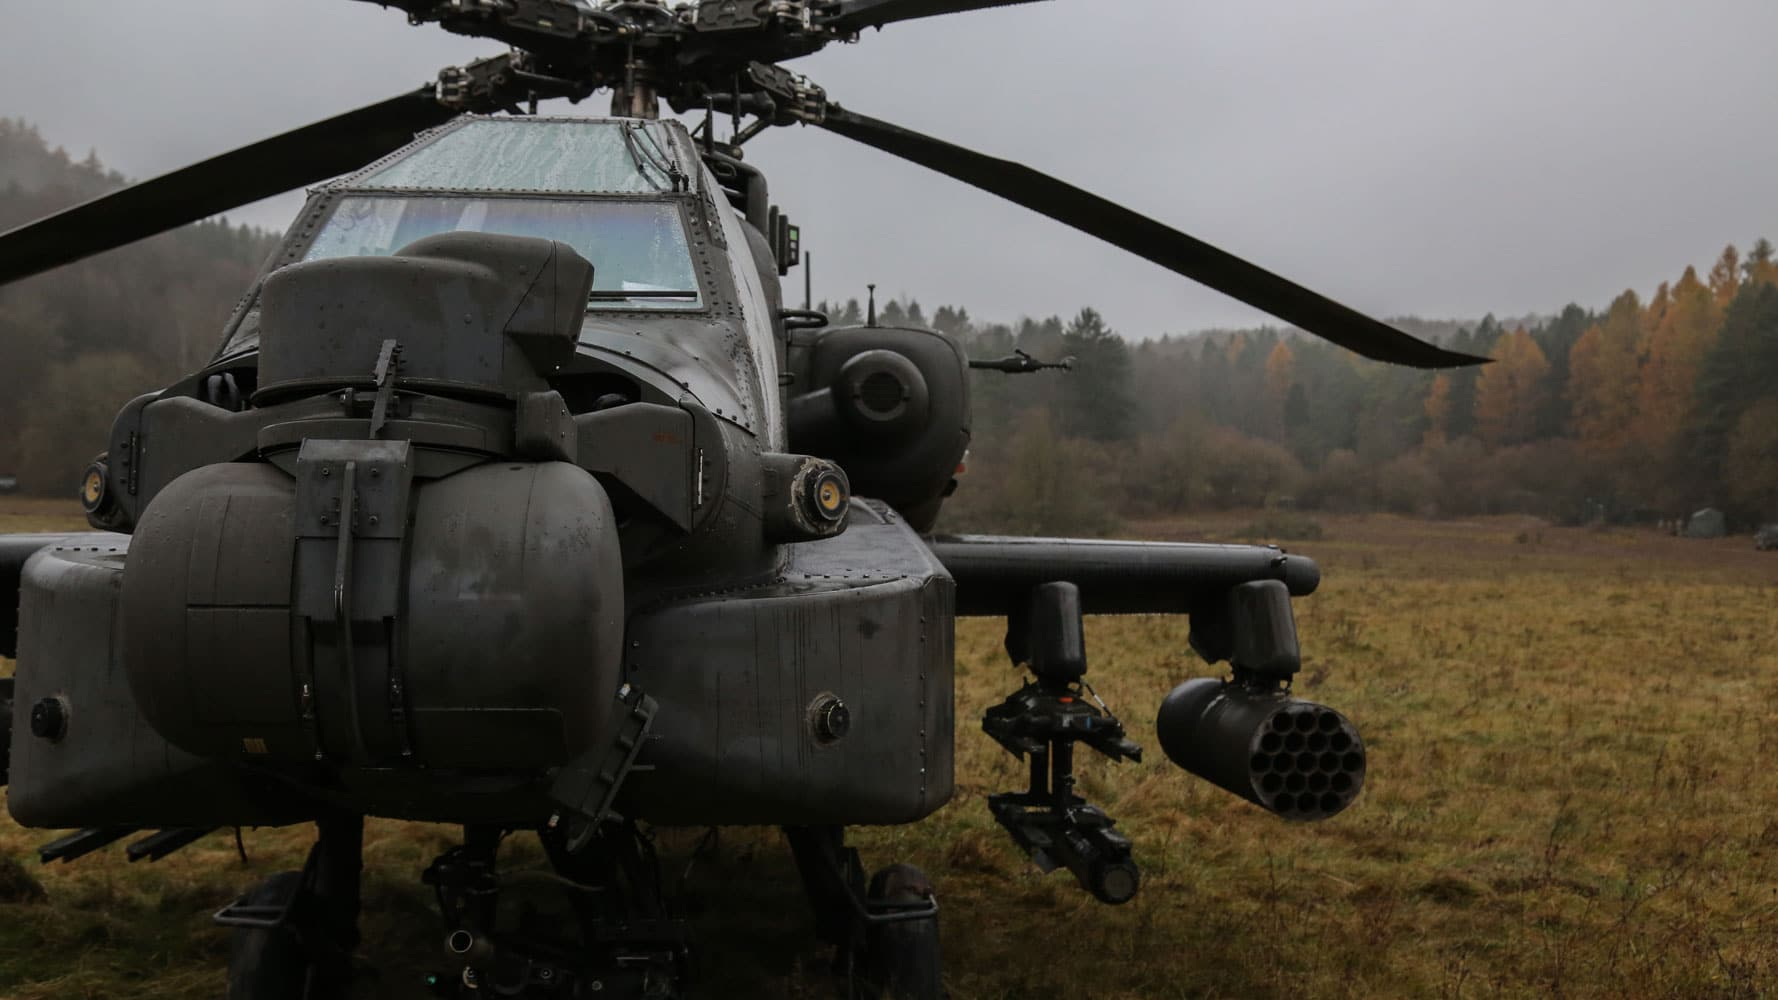 An AH-64D Apache Longbow helicopter is staged during exercise Allied Spirit VII at the U.S. Army's Joint Multinational Readiness Center in Hohenfels, Germany.